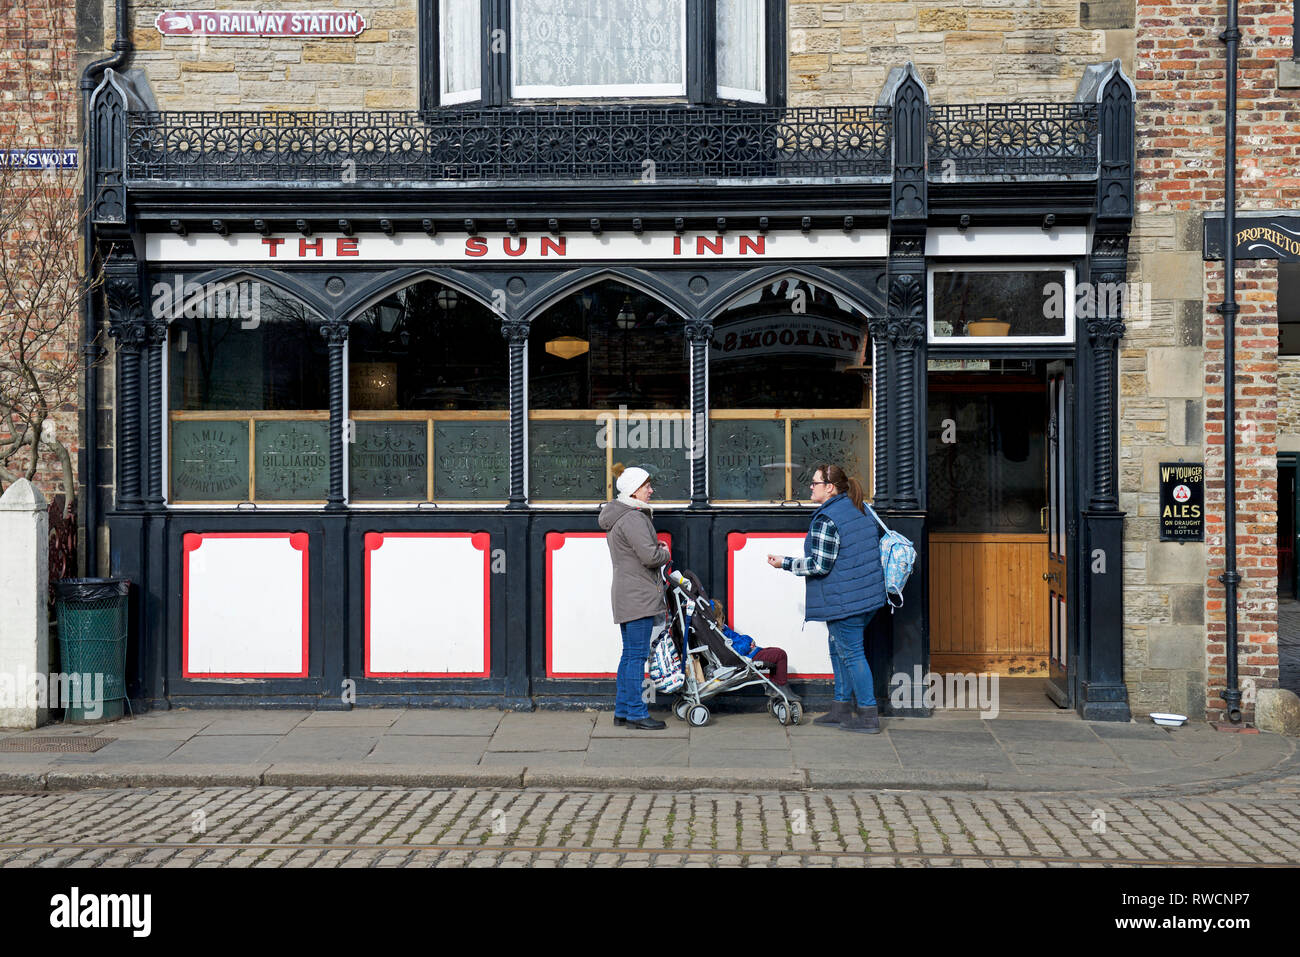 The Sun Inn, Beamish Museum, Co Durham, England UK - Stock Image